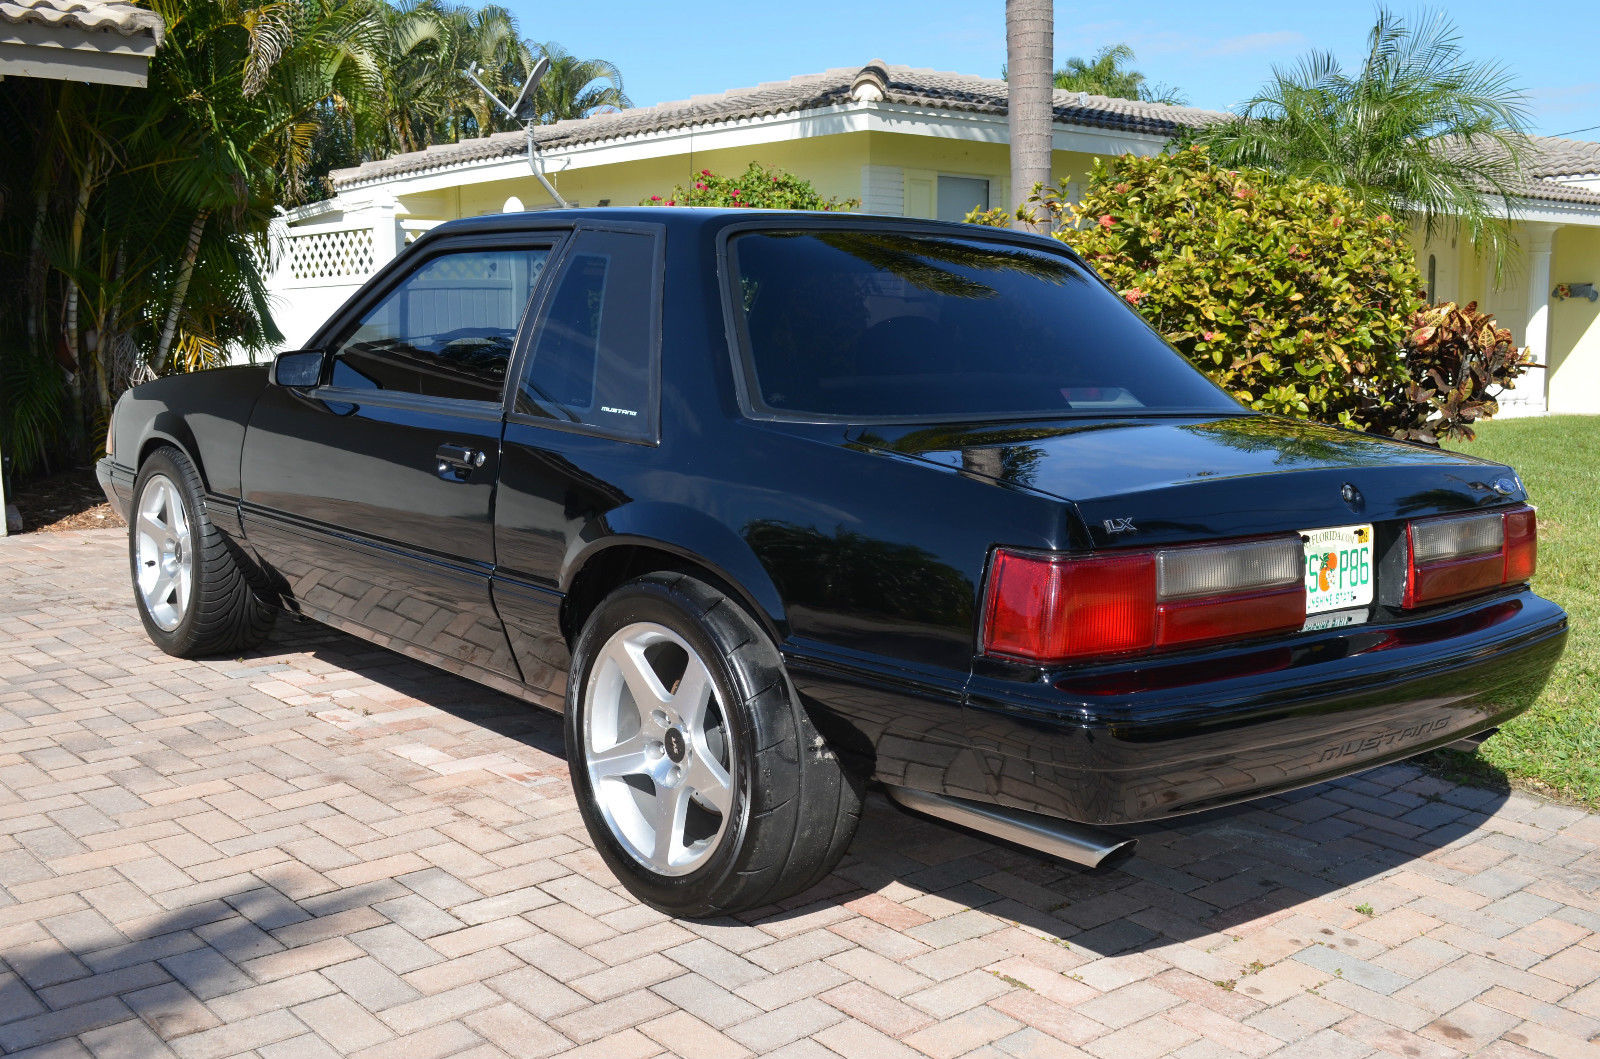 1993 Ford Mustang Lx Fox Body Coupe 01 Cobra Swap